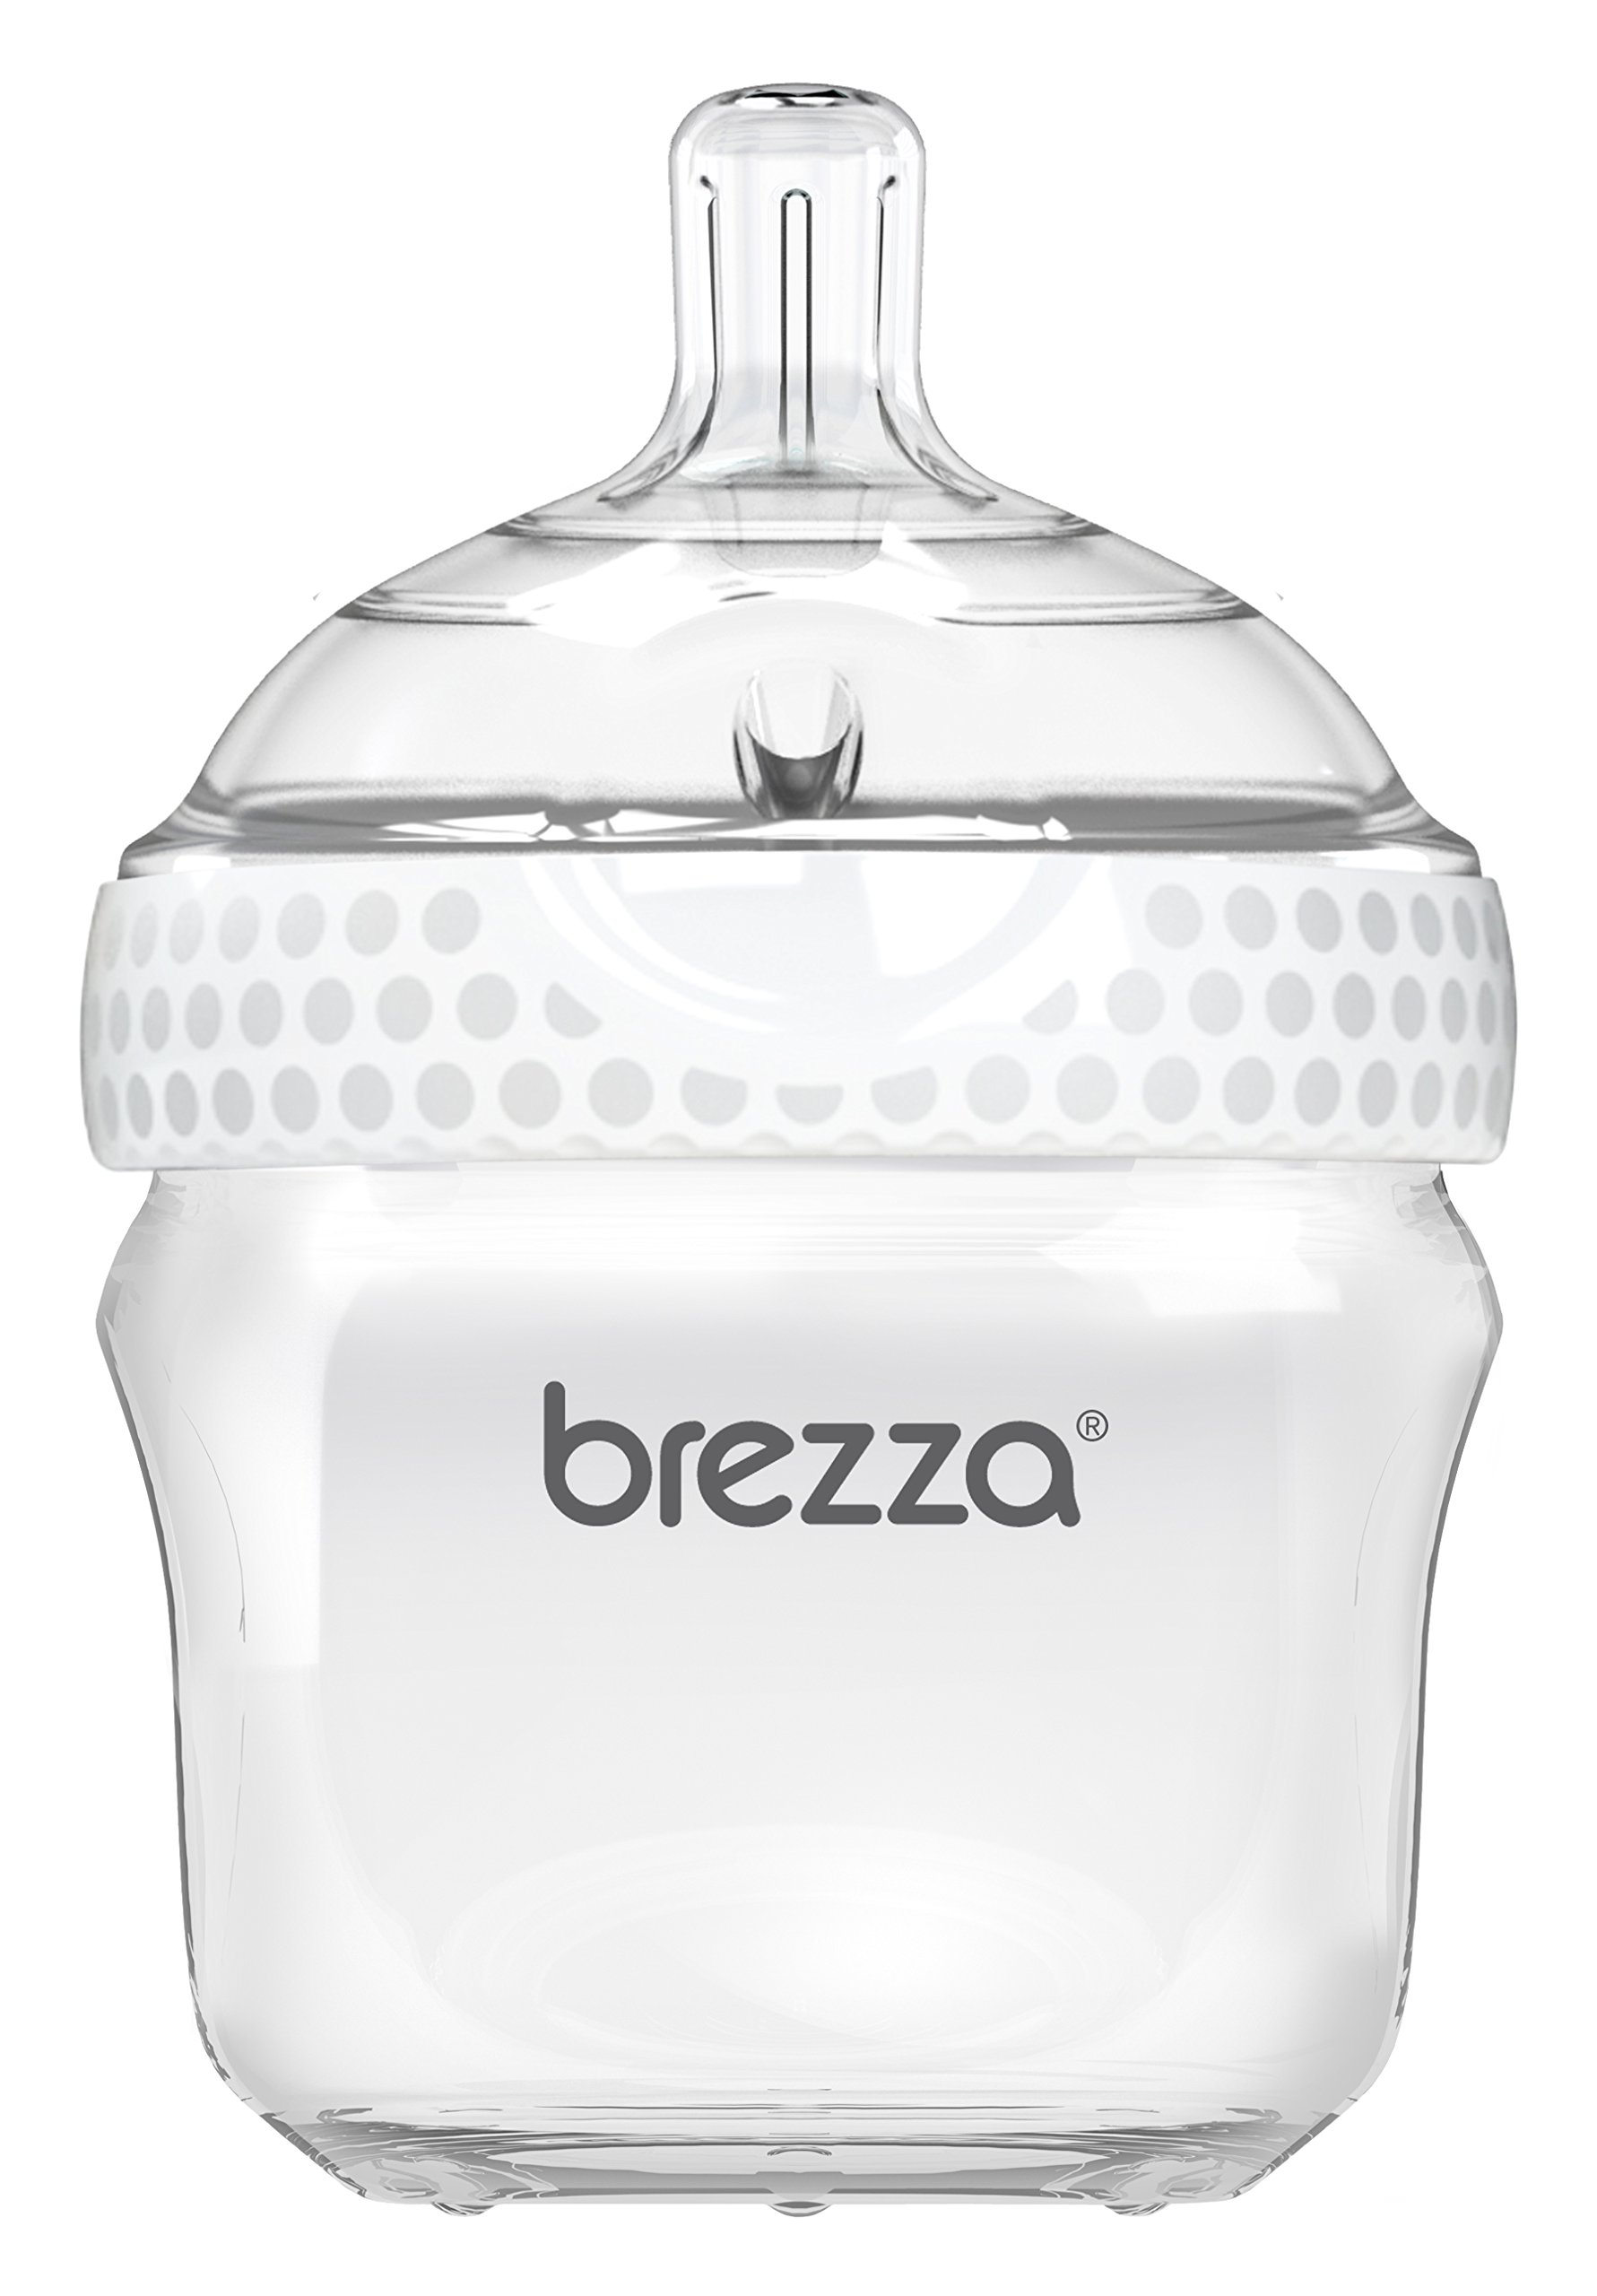 Baby Brezza Two Piece Natural Baby Bottle with Lid - Ergonomic, Wide Neck Design Makes it The Easiest to Clean - Modern Look - Anti-Colic - BPA Free Plastic - White - 5 Ounce - 1 Bottle